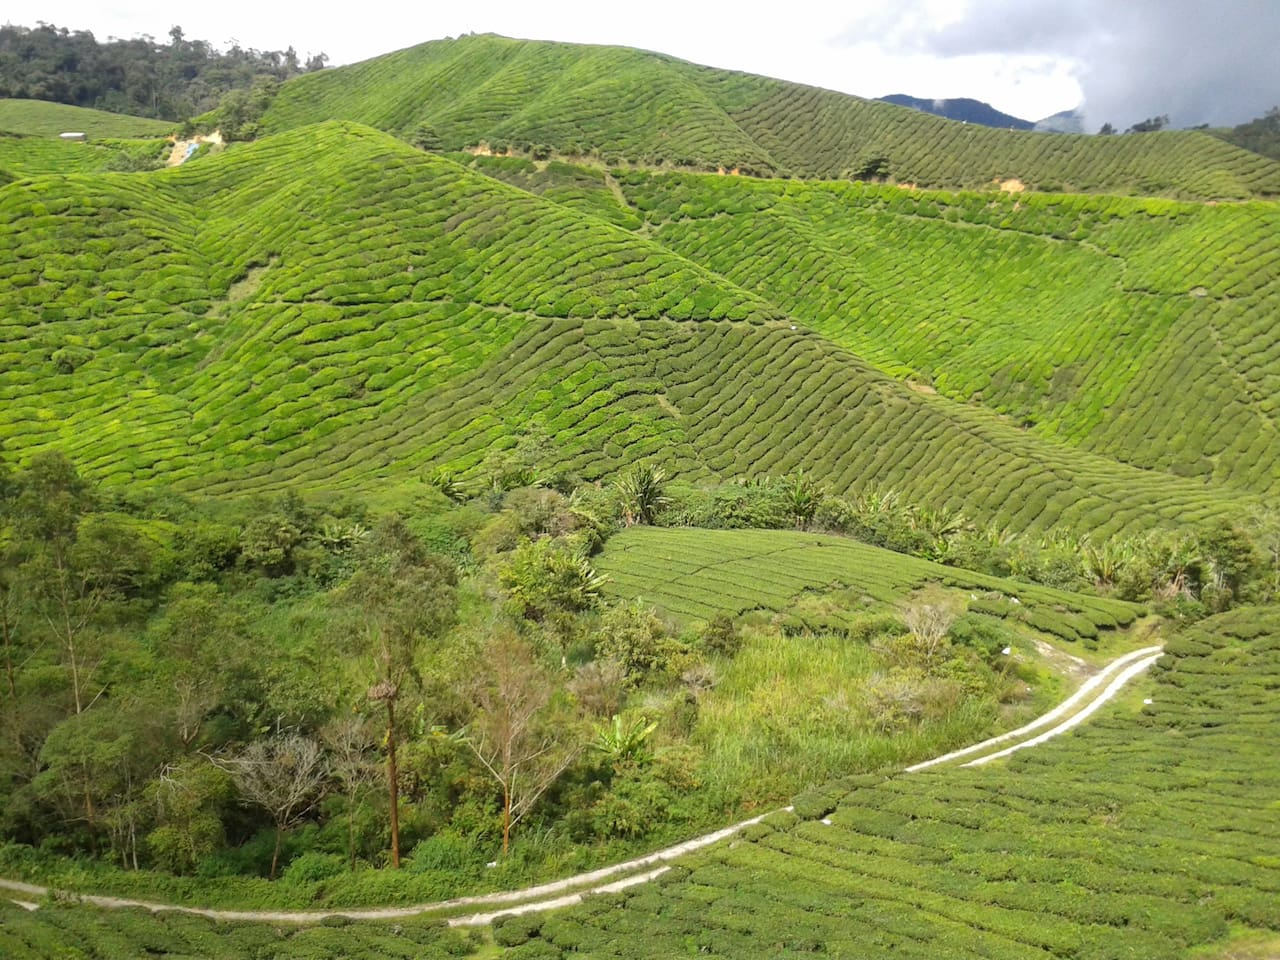 5 minutes by taxi to the nearest tea plantation from the apartment.